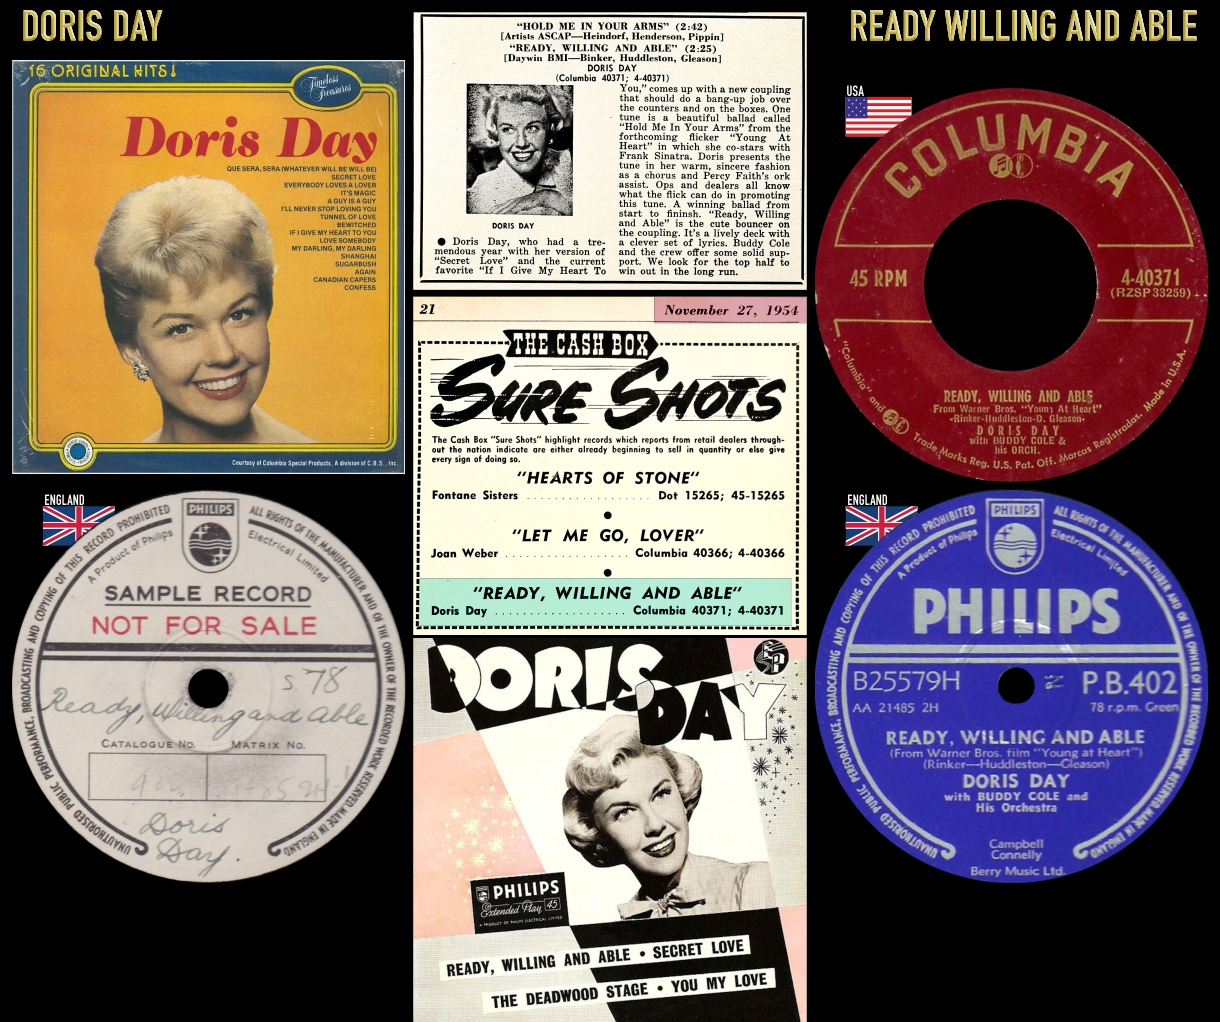 550409_Doris Day_Ready Willing And Able